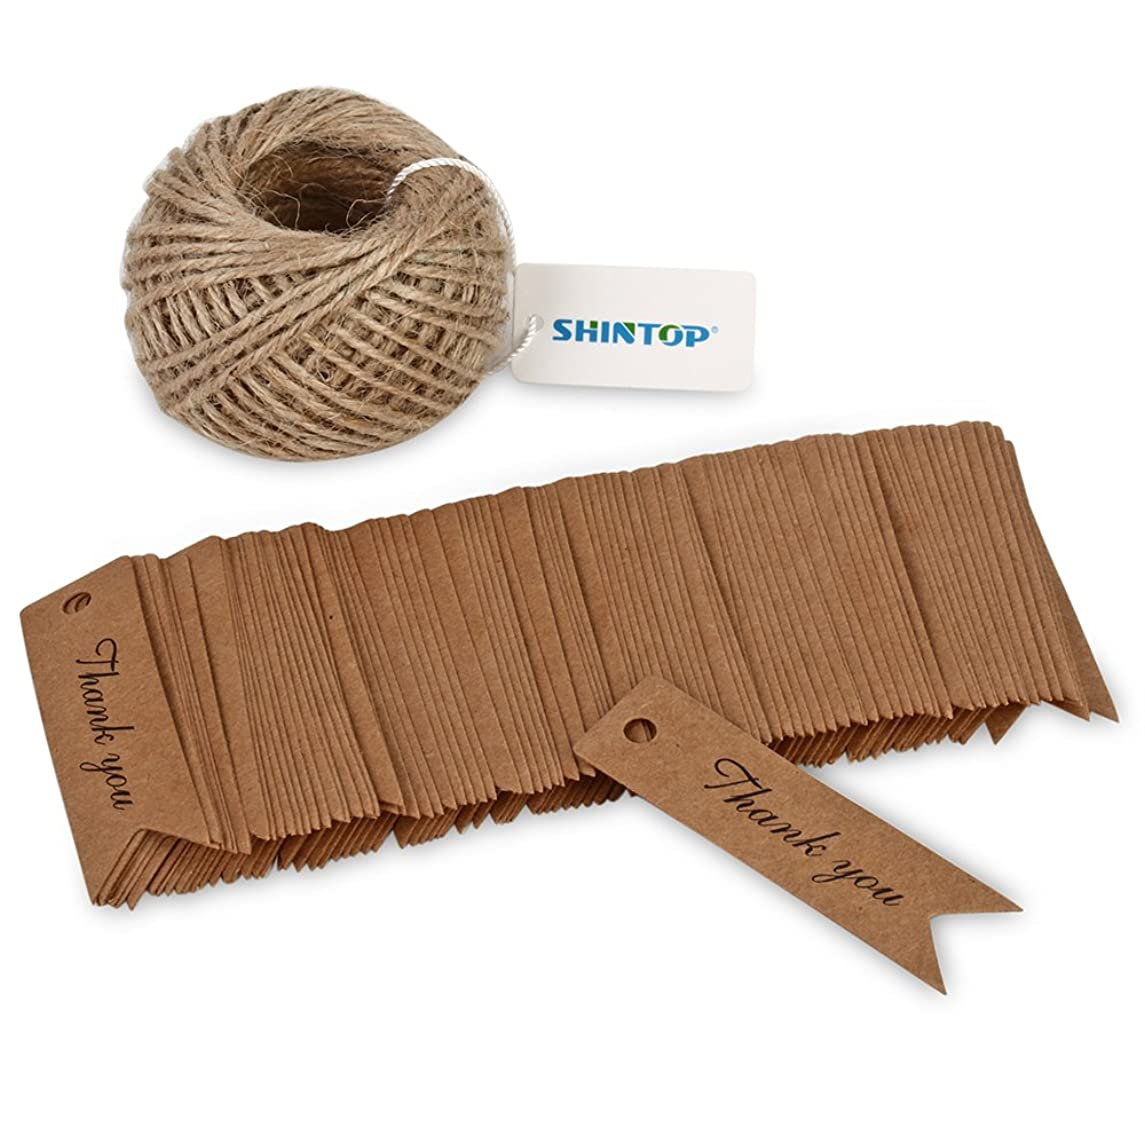 Shintop Thank You Tags - 100PCS Kraft Paper?Gift Tags?Bonbonniere Favor?Wedding Hang Tags with Free 100 Feet Natural Jute Twine (Brown)